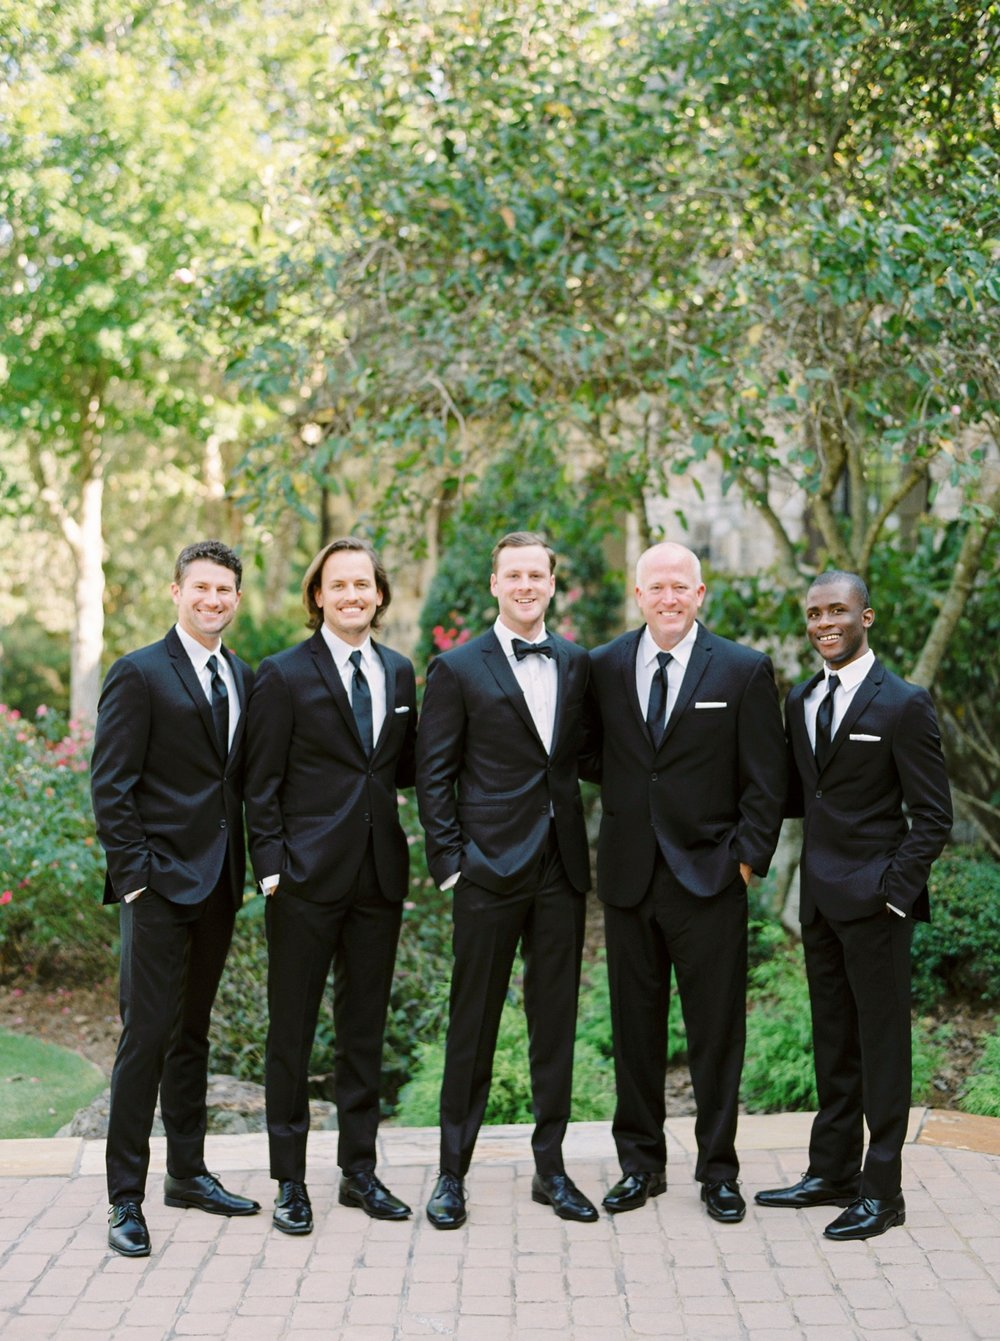 Calgary wedding photographers | georgia wedding photographers | fine art film | Justine Milton Photography | wedding details | georgia wedding | groomsmen portraits